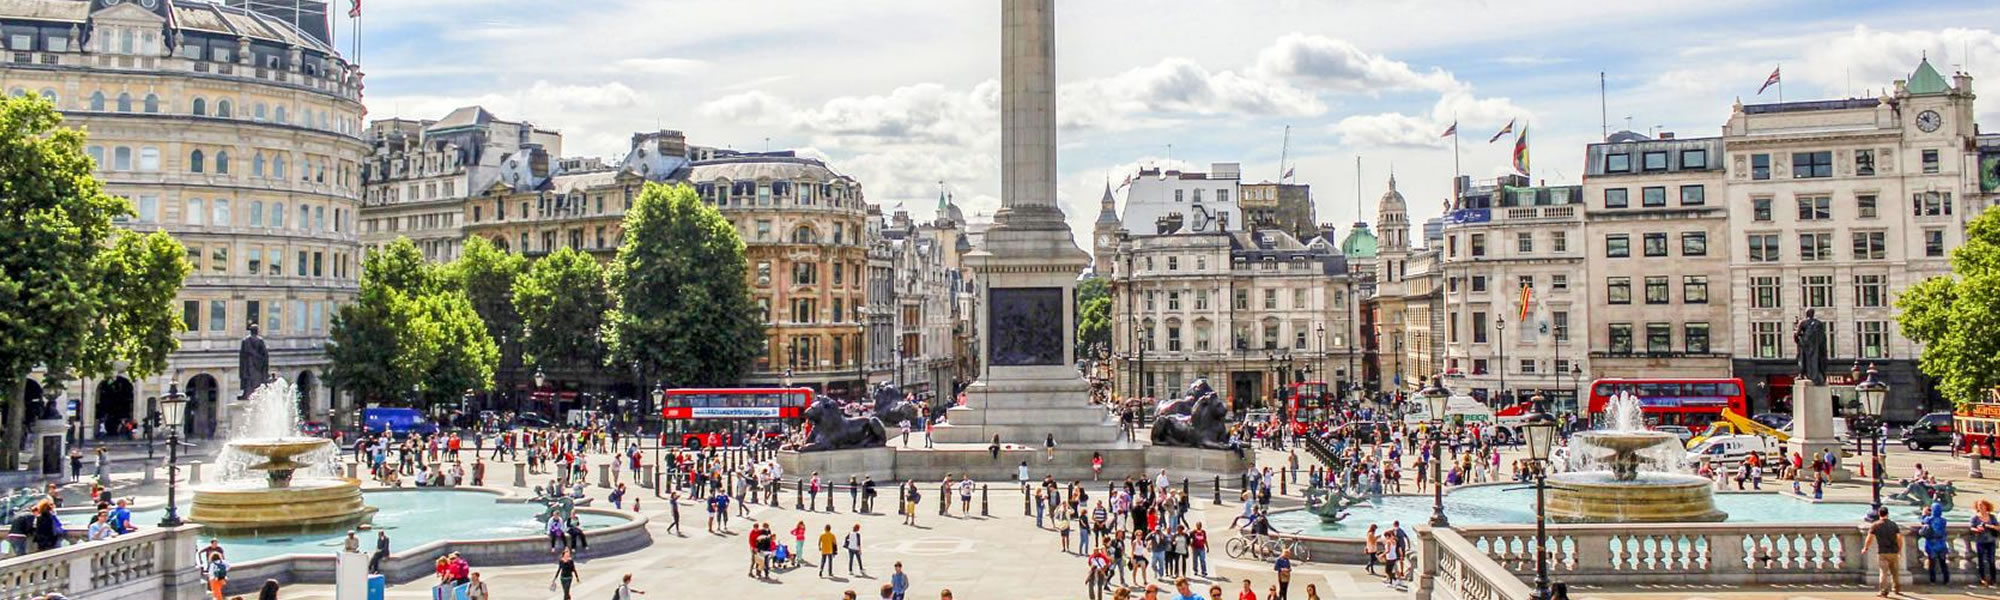 Bb Cheap Hotels Near Trafalgar Square London